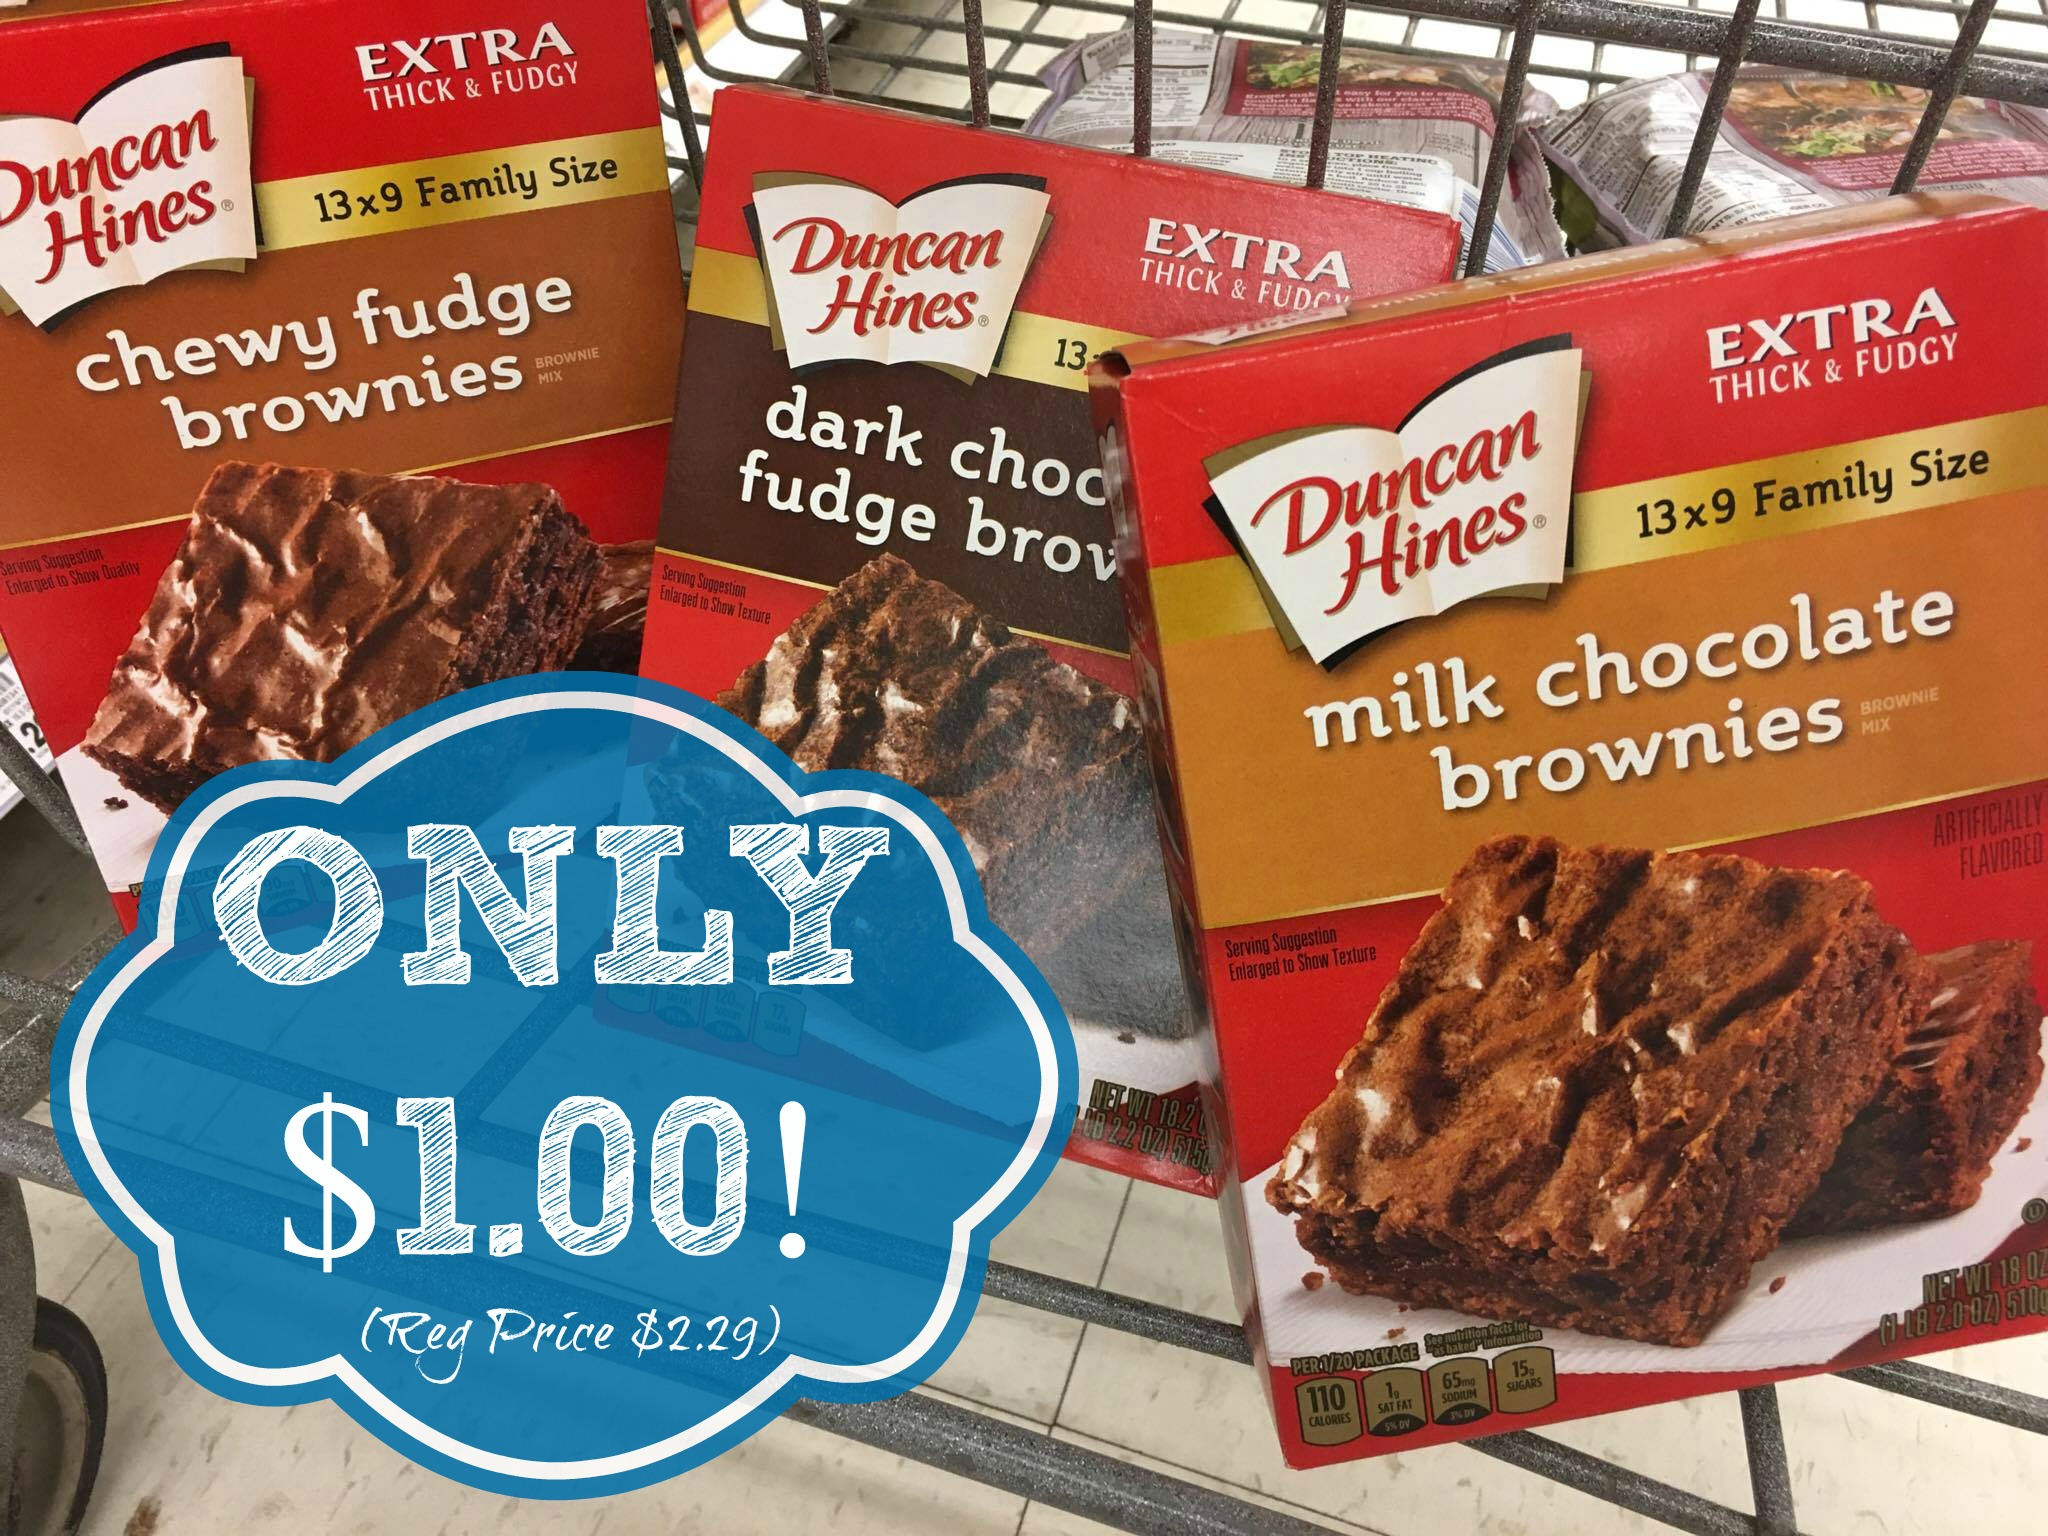 photograph about Duncan Hines Coupons Printable identify Consider Duncan Hines Brownie Incorporate For Merely $1.00 at Kroger!! (Reg